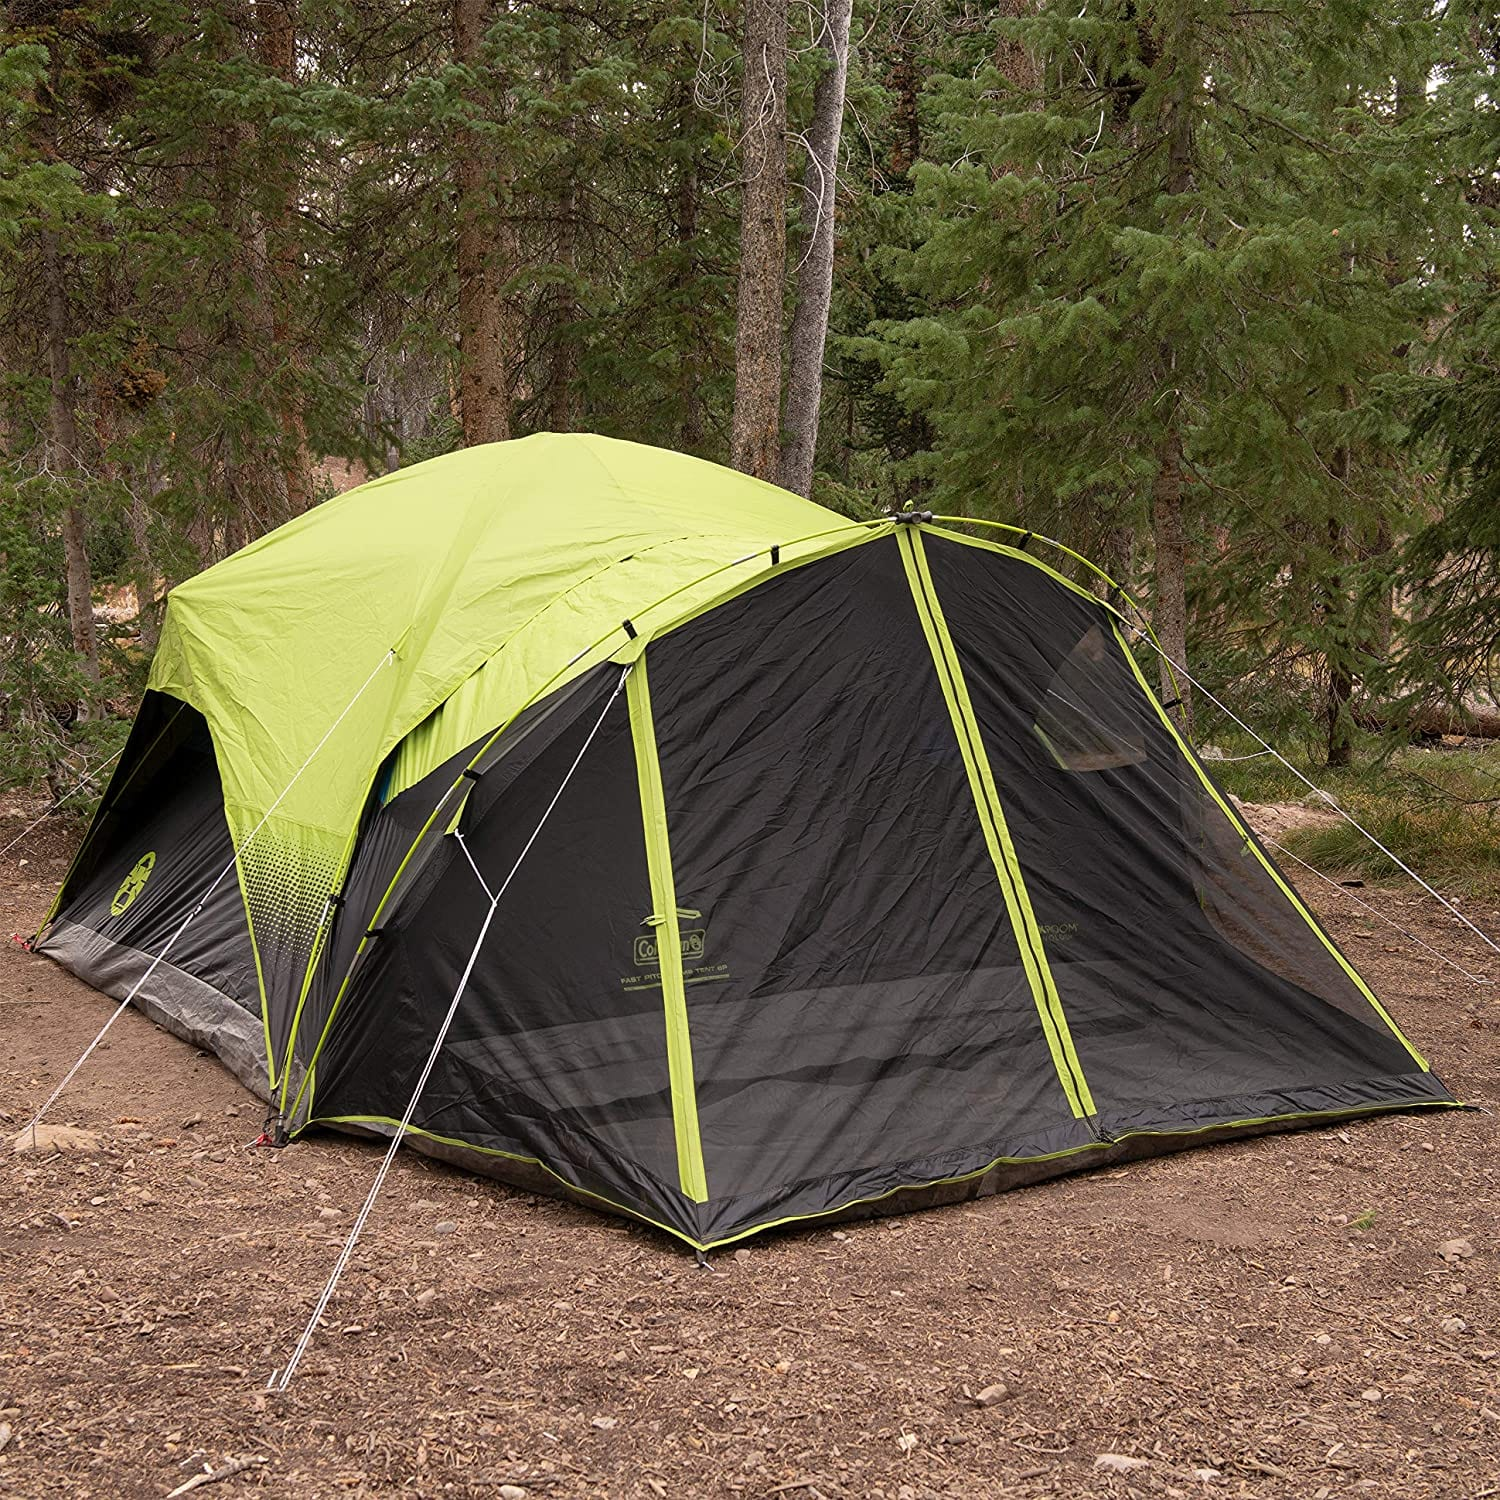 Best Family Tent Top Pick: Coleman Carlsbad